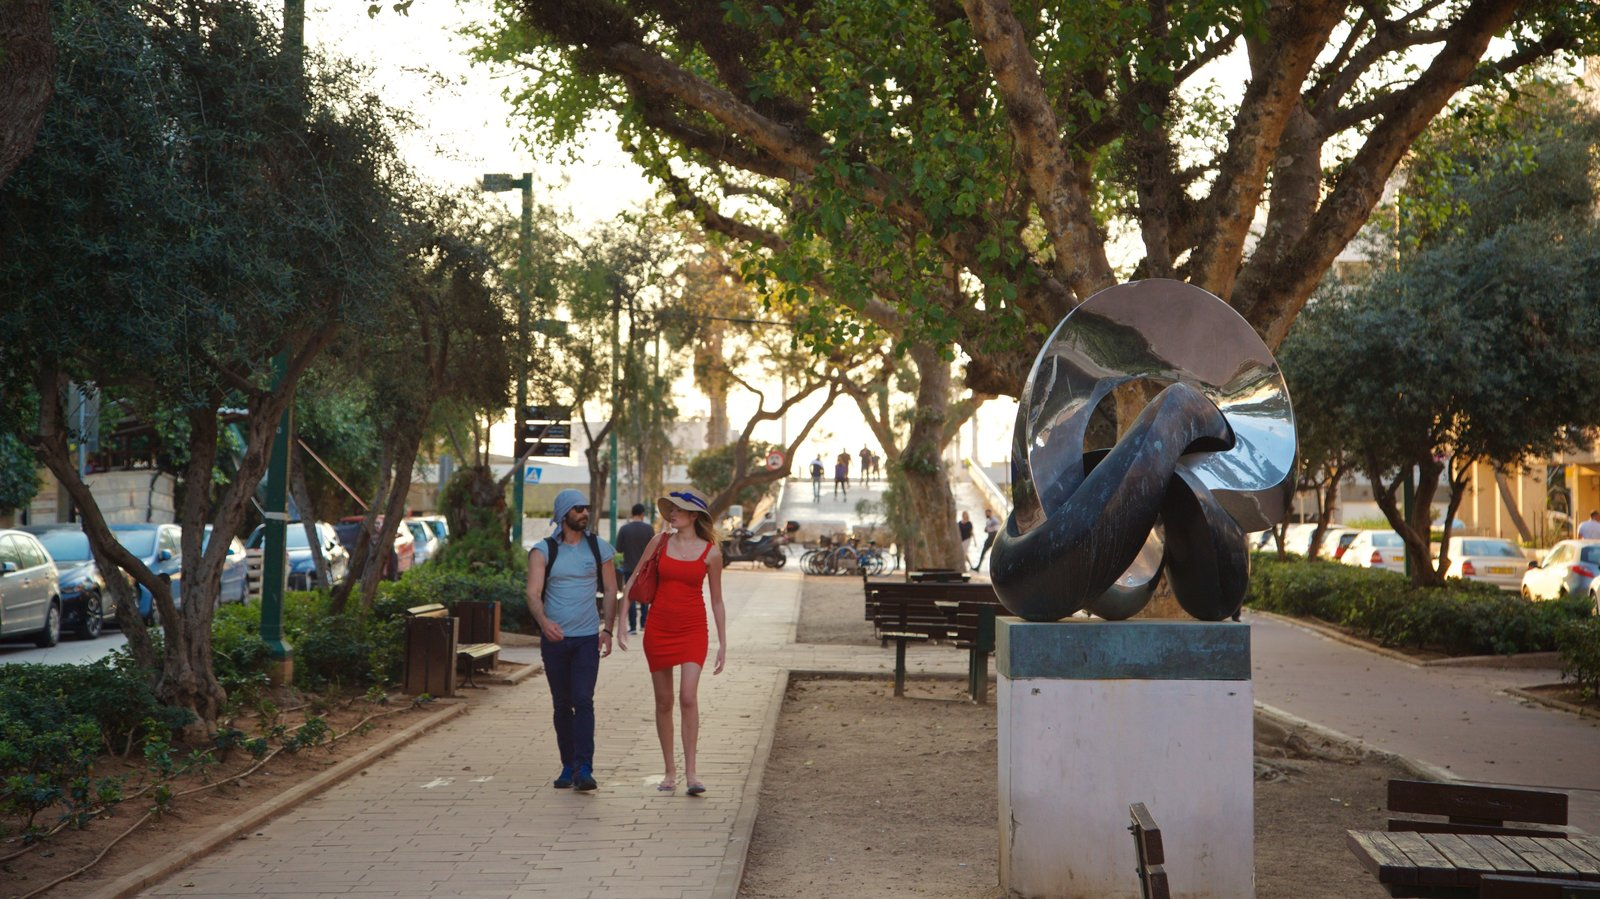 Tel Aviv featuring street scenes, outdoor art and a park